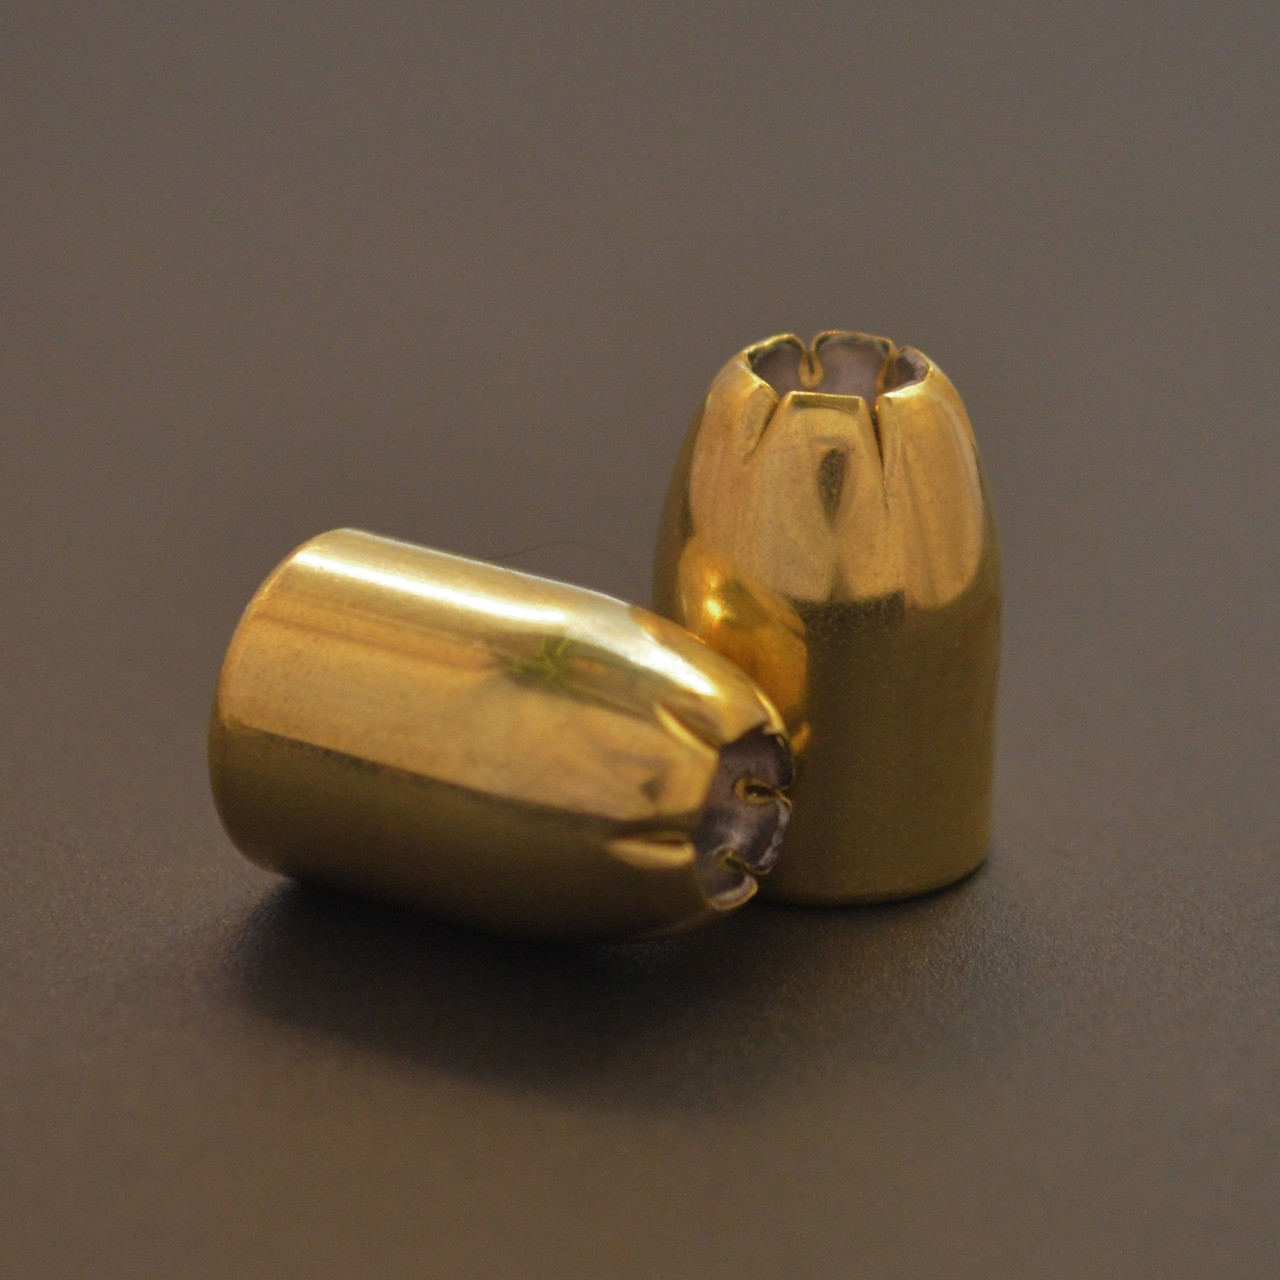 10mm/.40 165gr JHP - 2,700ct CASE